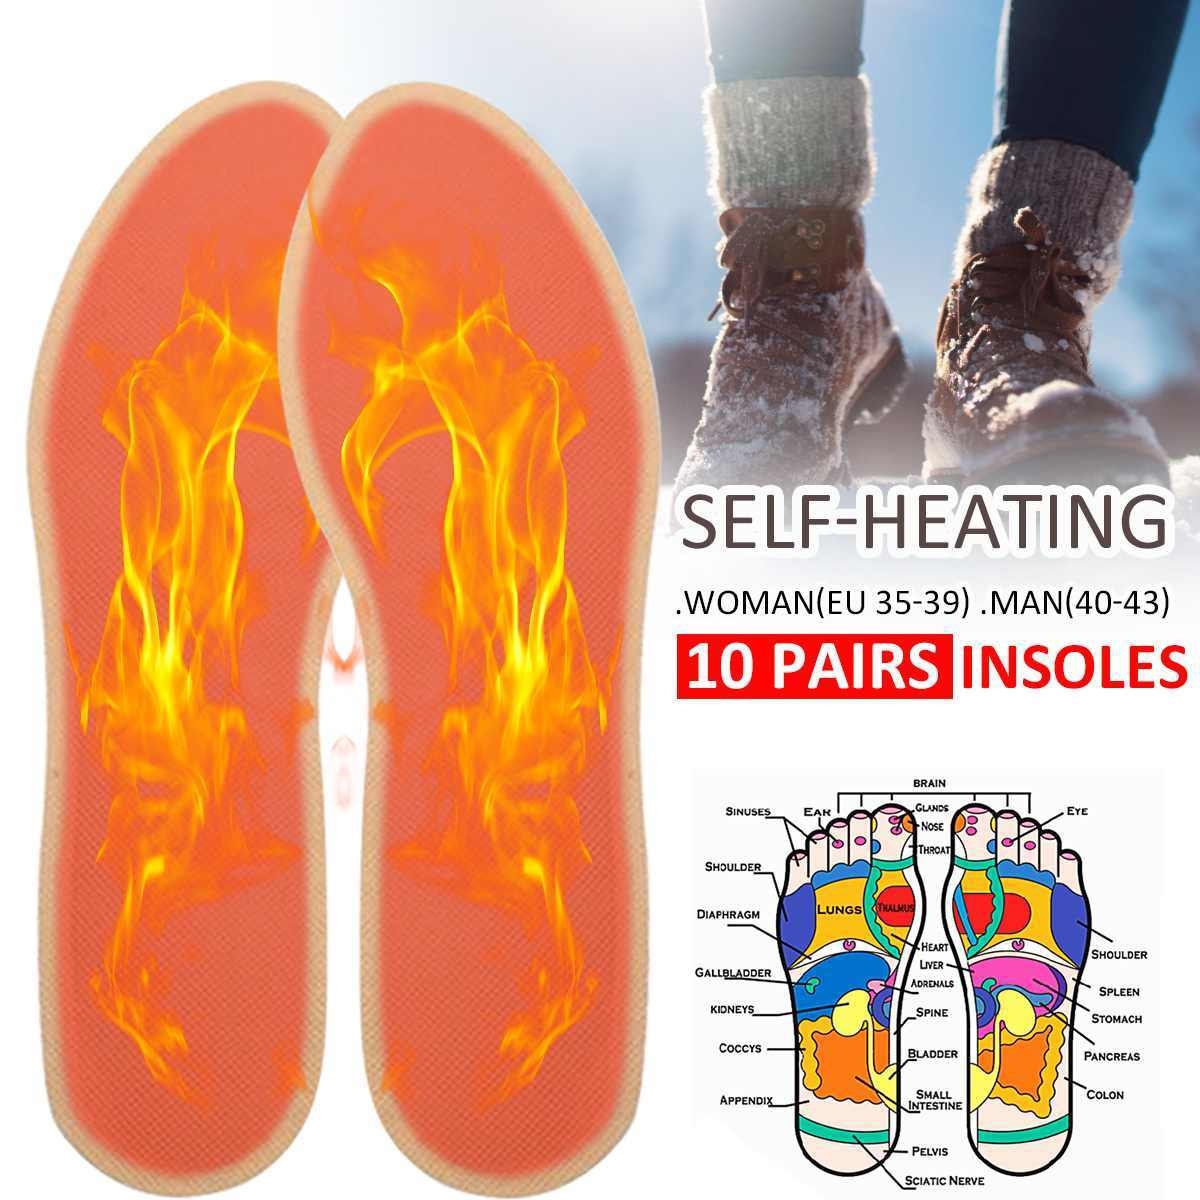 1 Pair Unisex Heated Insoles Winter Keep Warm Foot Sport Shoes Insert Boots Pad Sole Self-heating Insoles